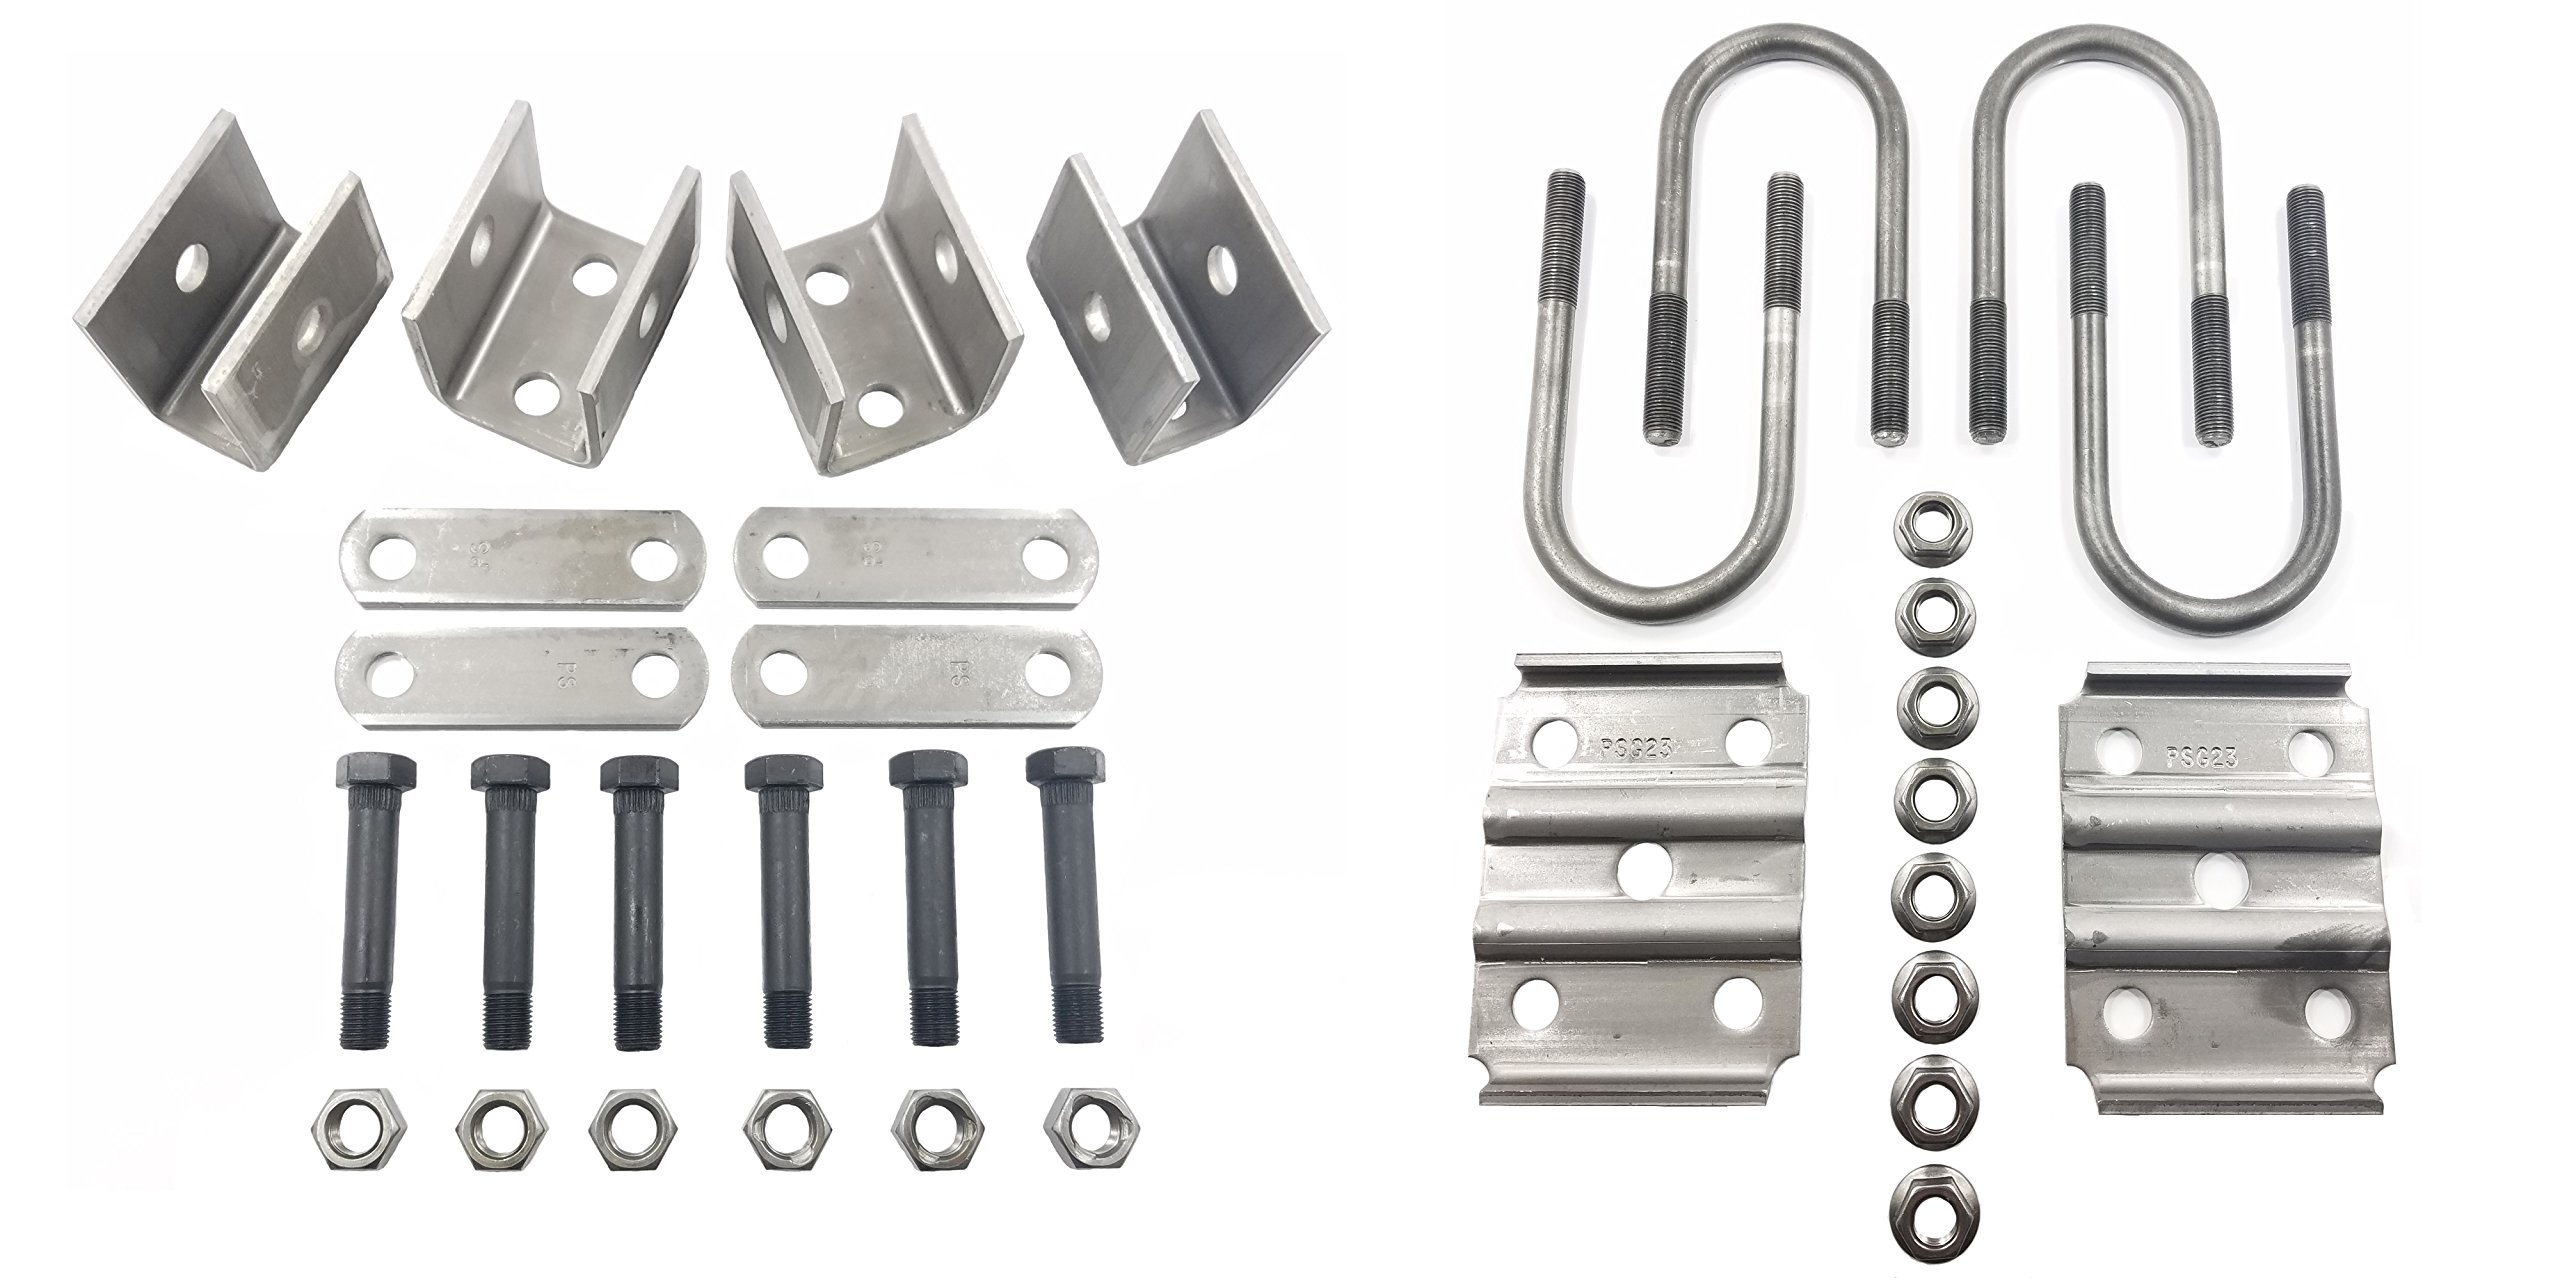 Rockwell American Single Axle Spring Hanger Kit & U-Bolt Kit for 3,500lb Trailer Axle by Rockwell American